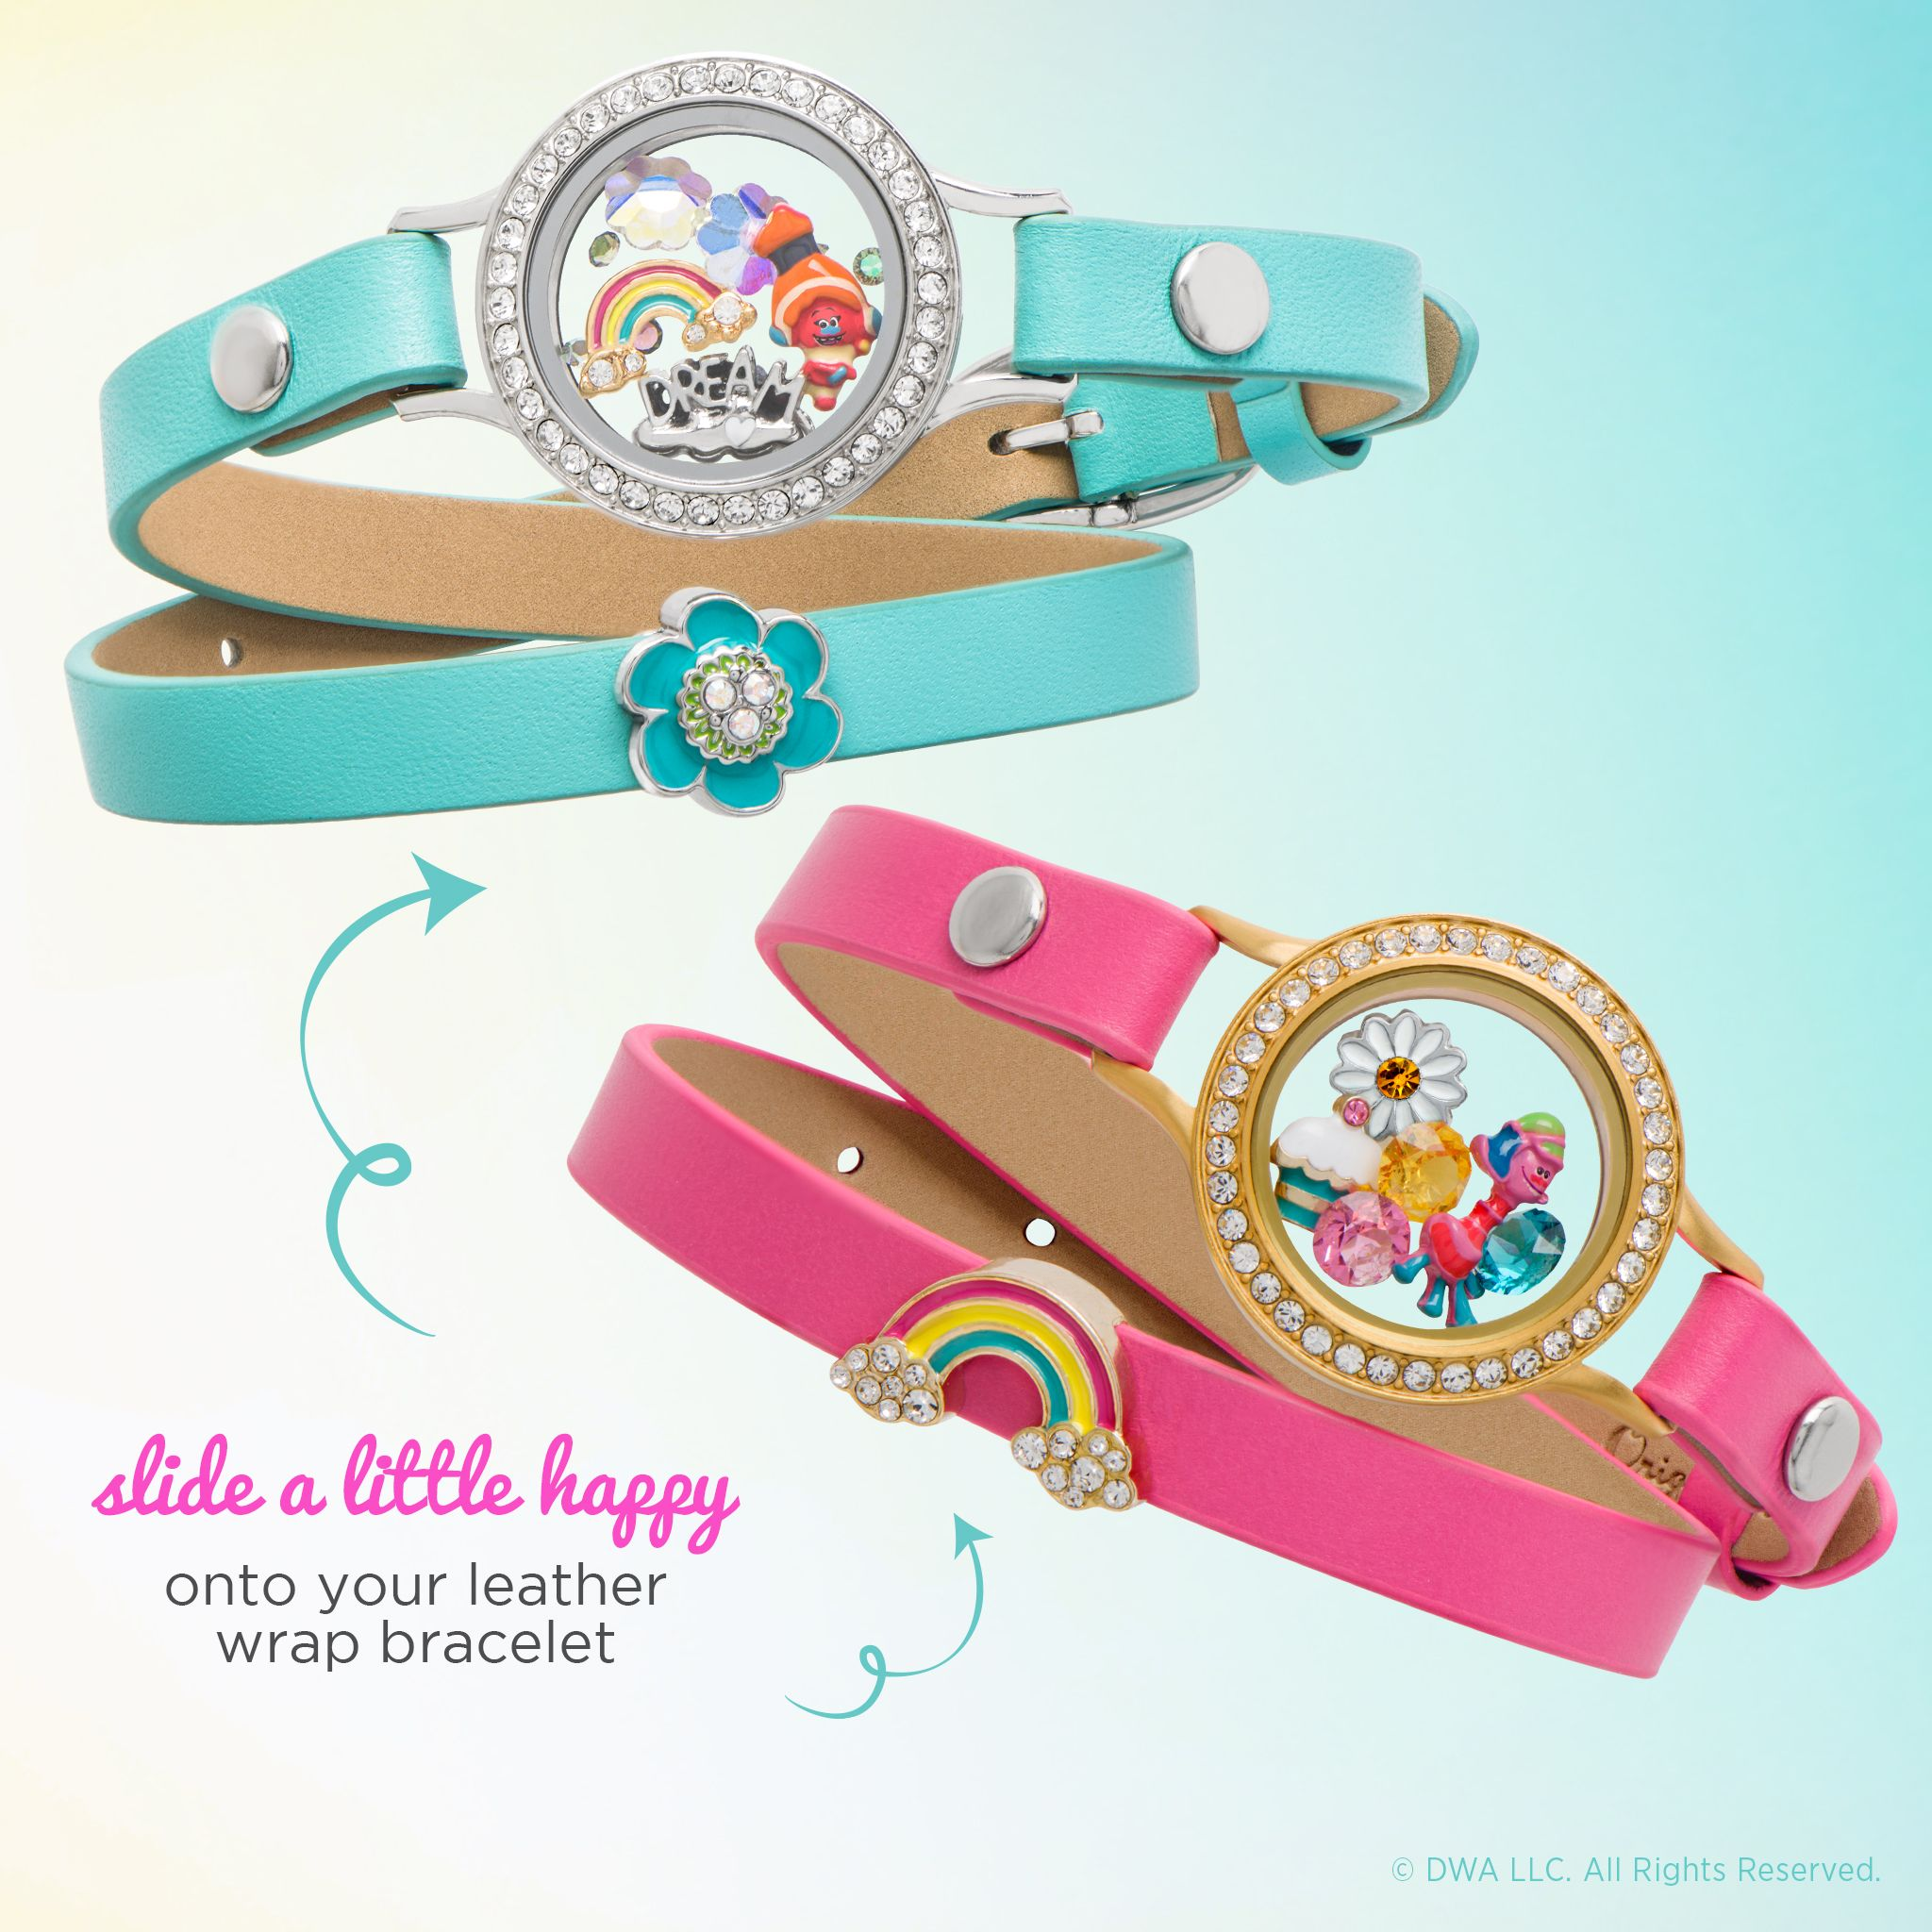 Origami Owl. New Trolls collection! Get yours here: www.CharmingLocketsByAline.OrigamiOwl.com